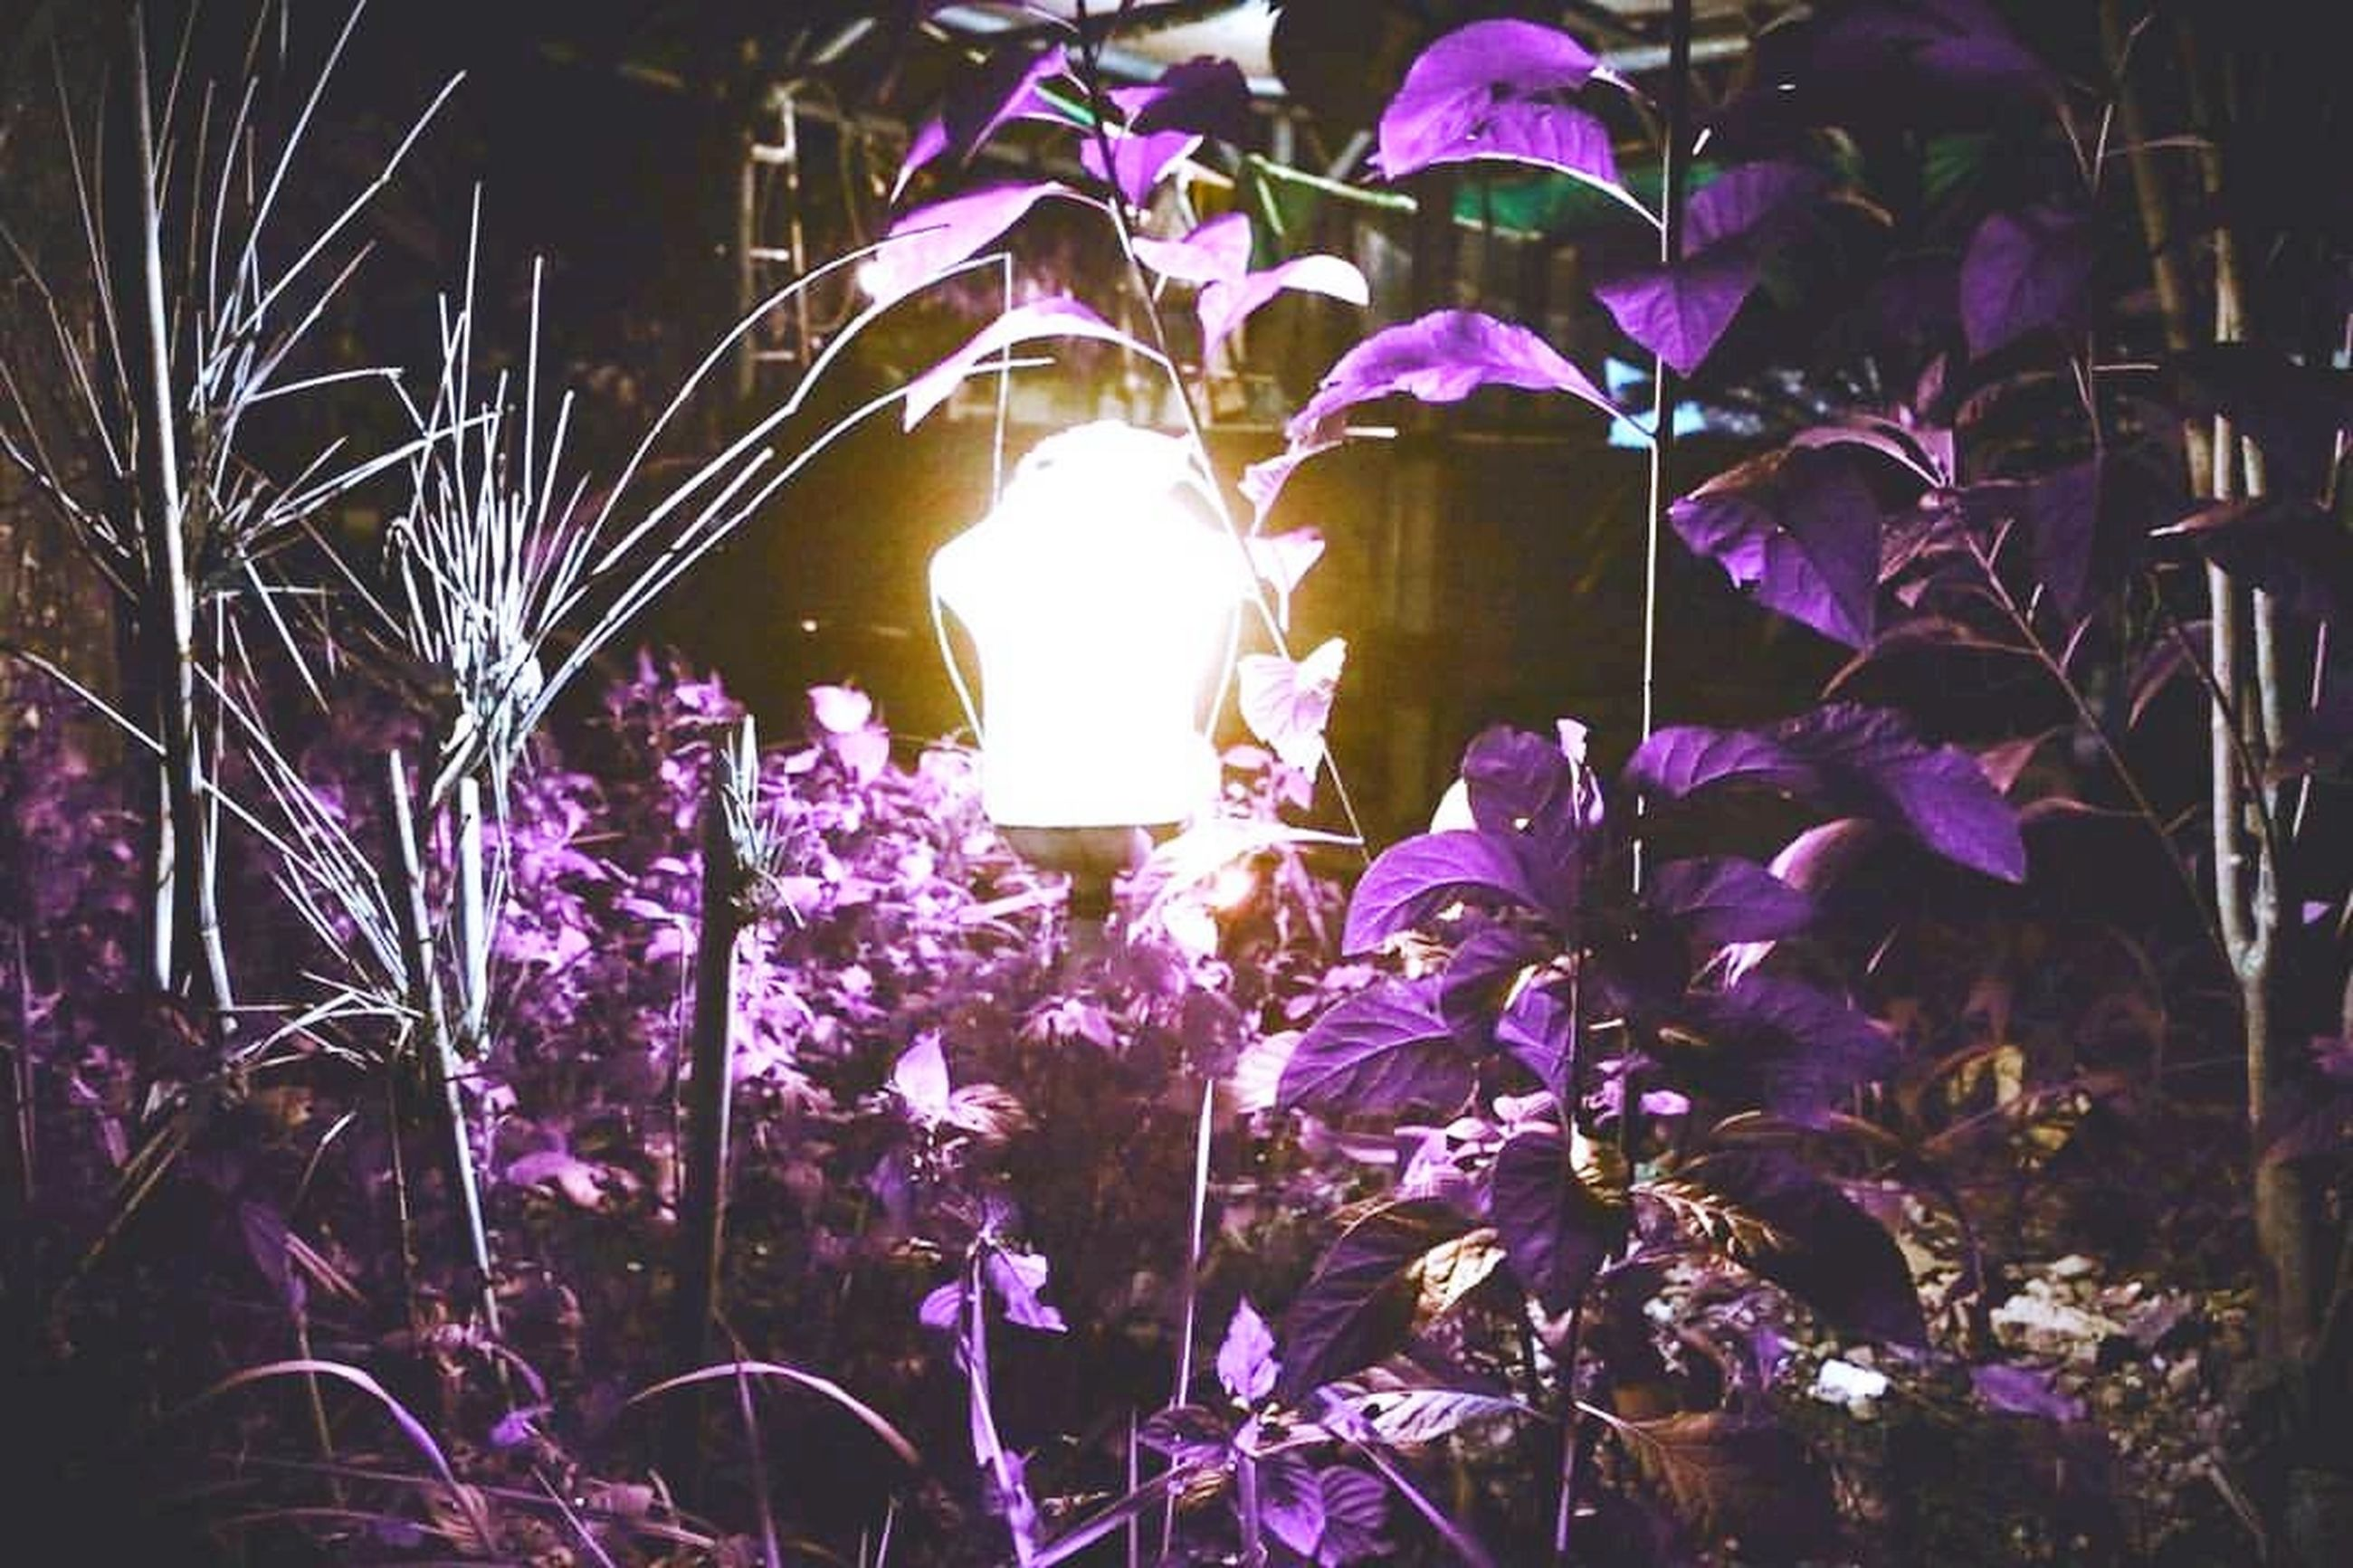 purple, flower, night, illuminated, growth, fragility, nature, outdoors, beauty in nature, plant, no people, freshness, close-up, flower head